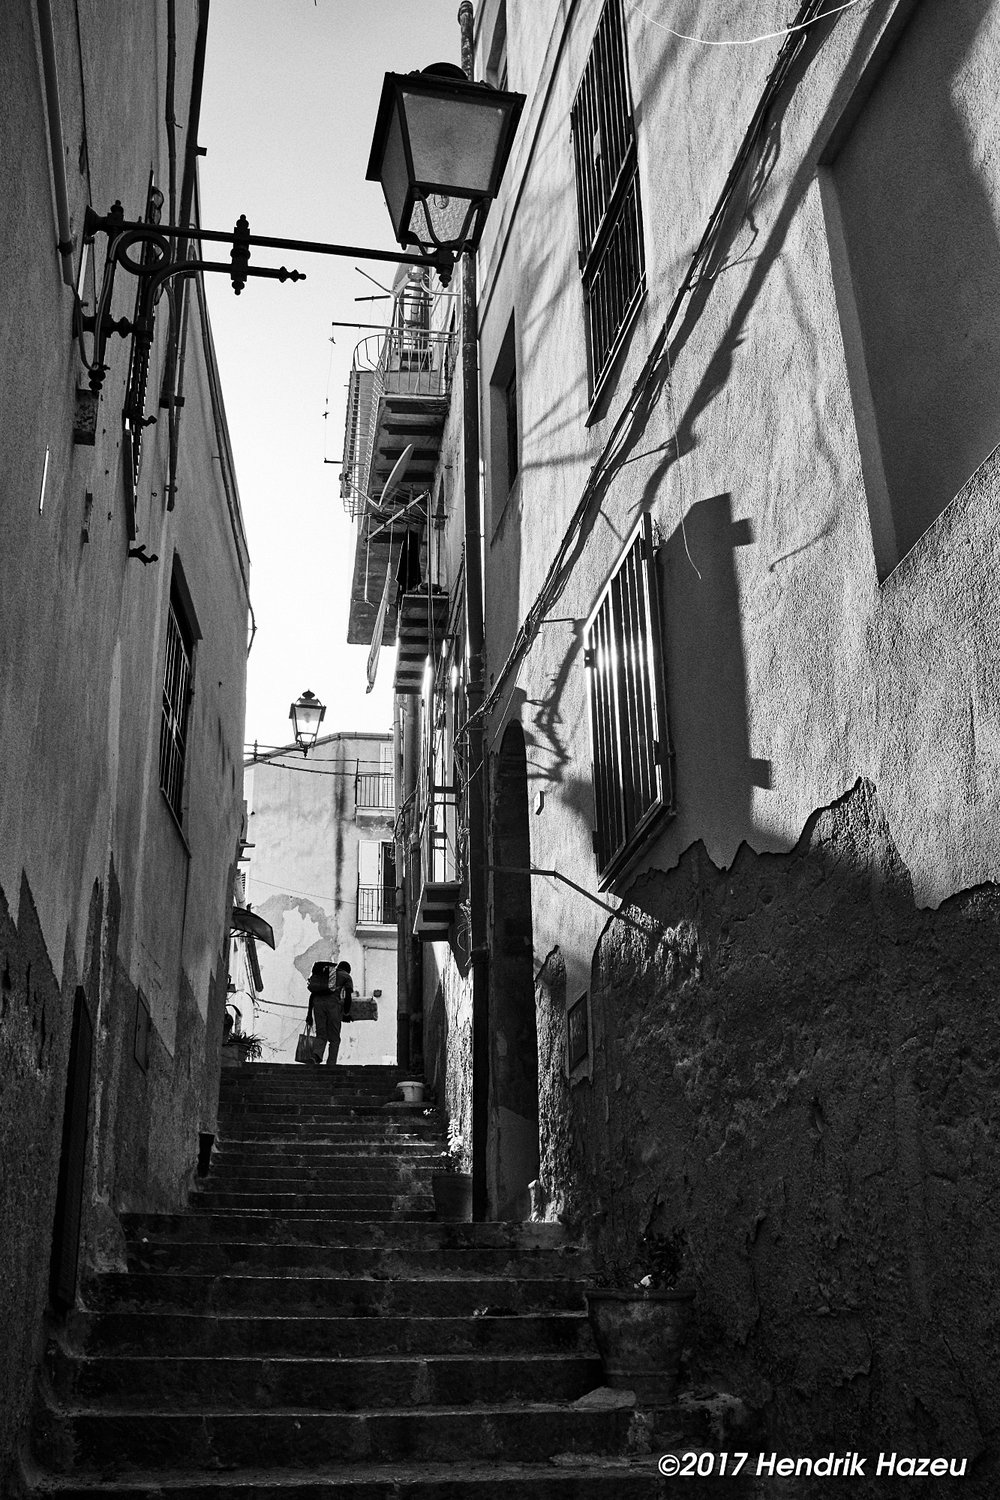 Stairway alley, Fuji X100F, 23 mm and Capture One with BW-15 (grey) style